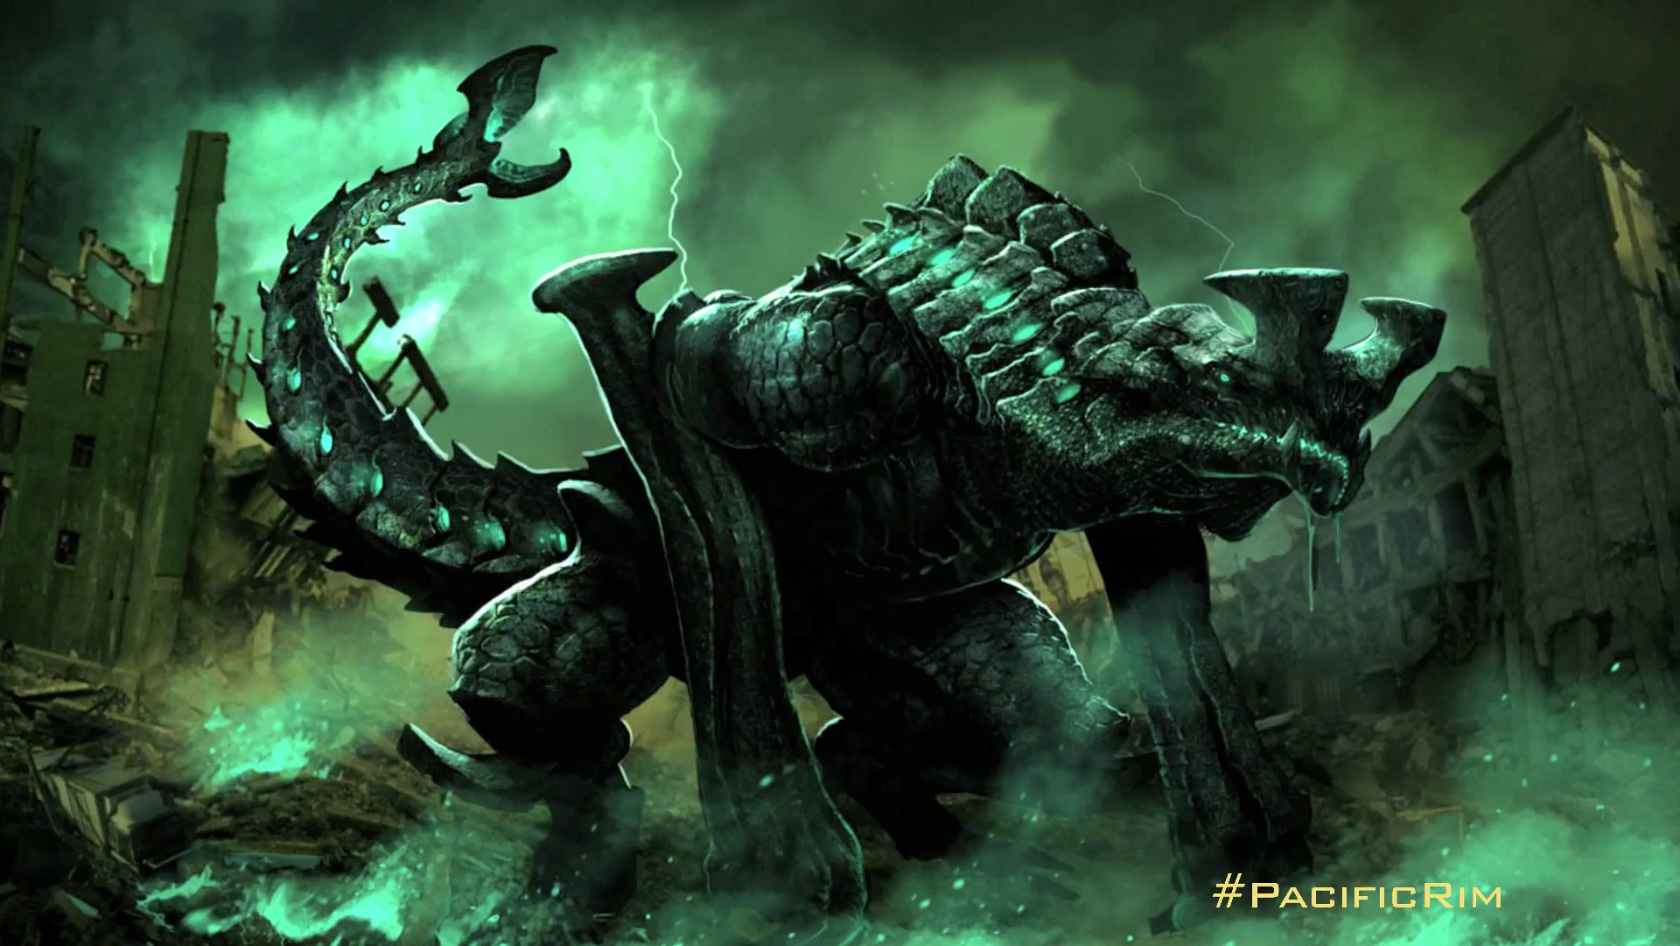 Pacific_Rim_Kaiju_Monster_Concept_Art_04.jpg